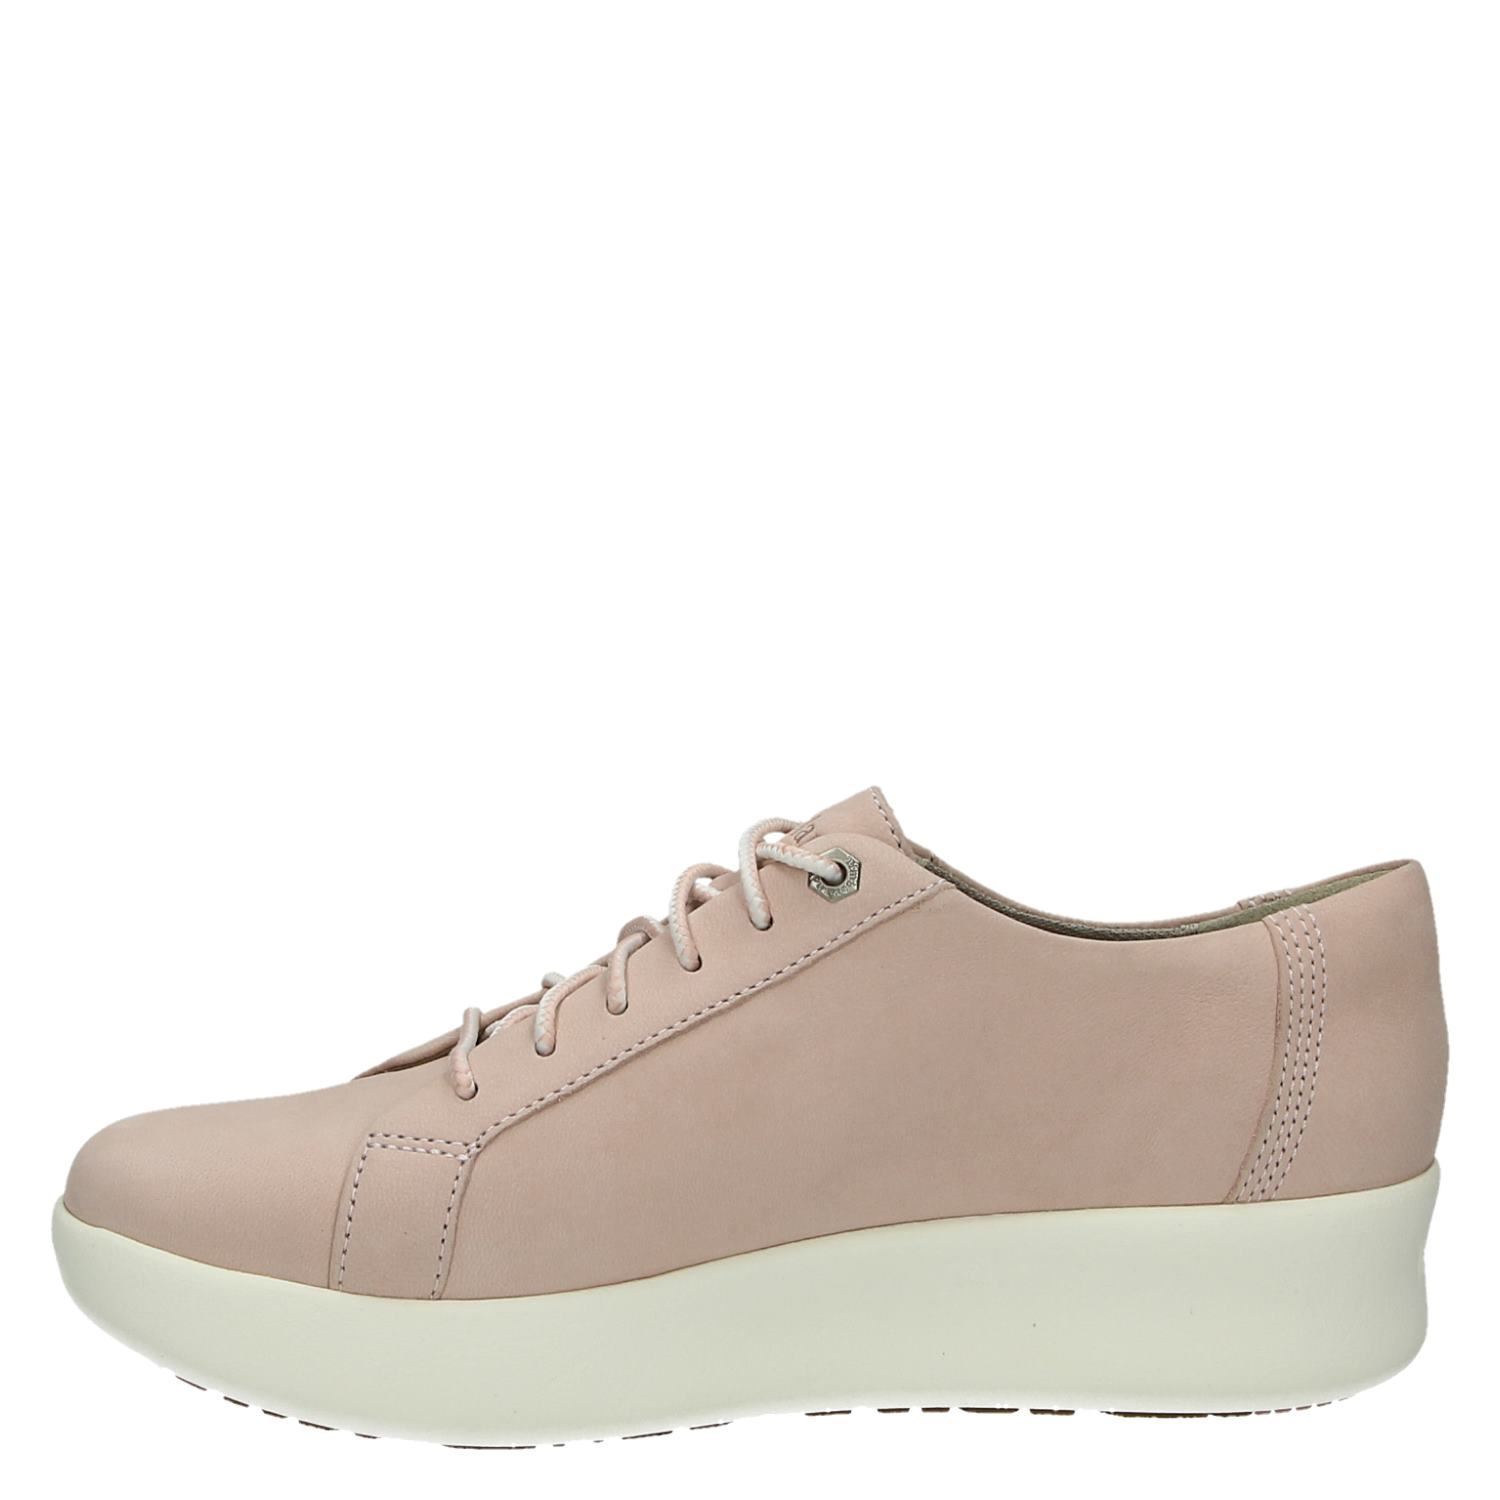 Timberland lage sneakers roze